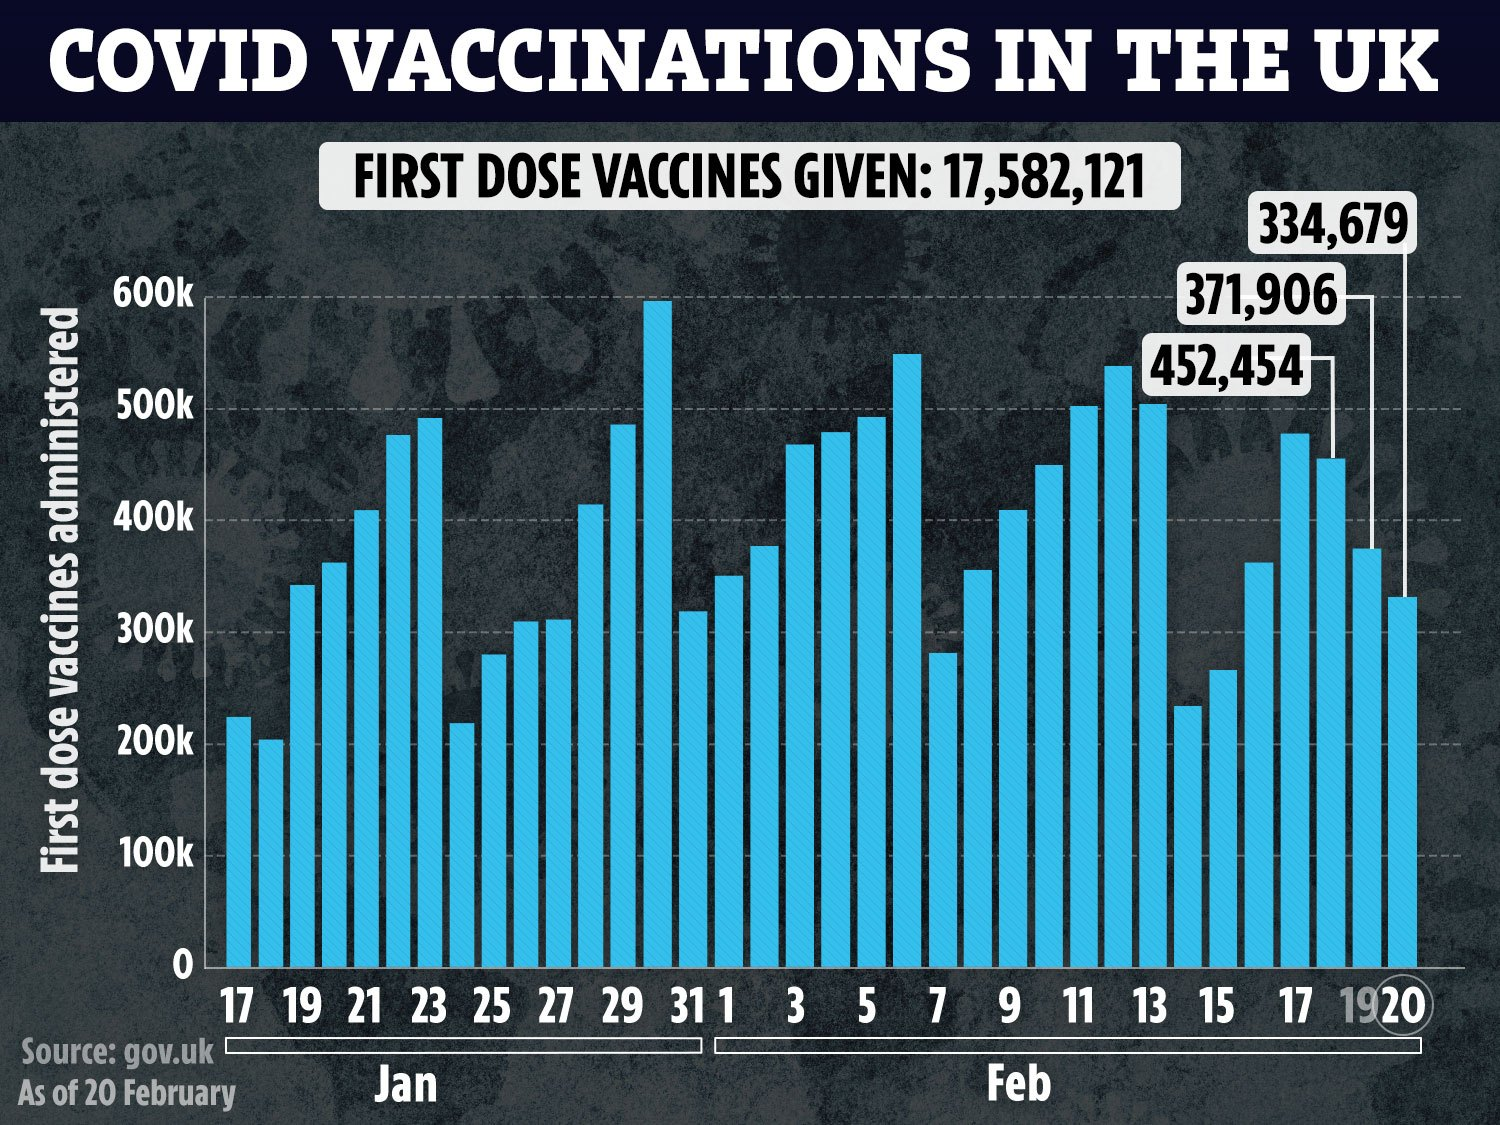 More people are getting vaccinated every day